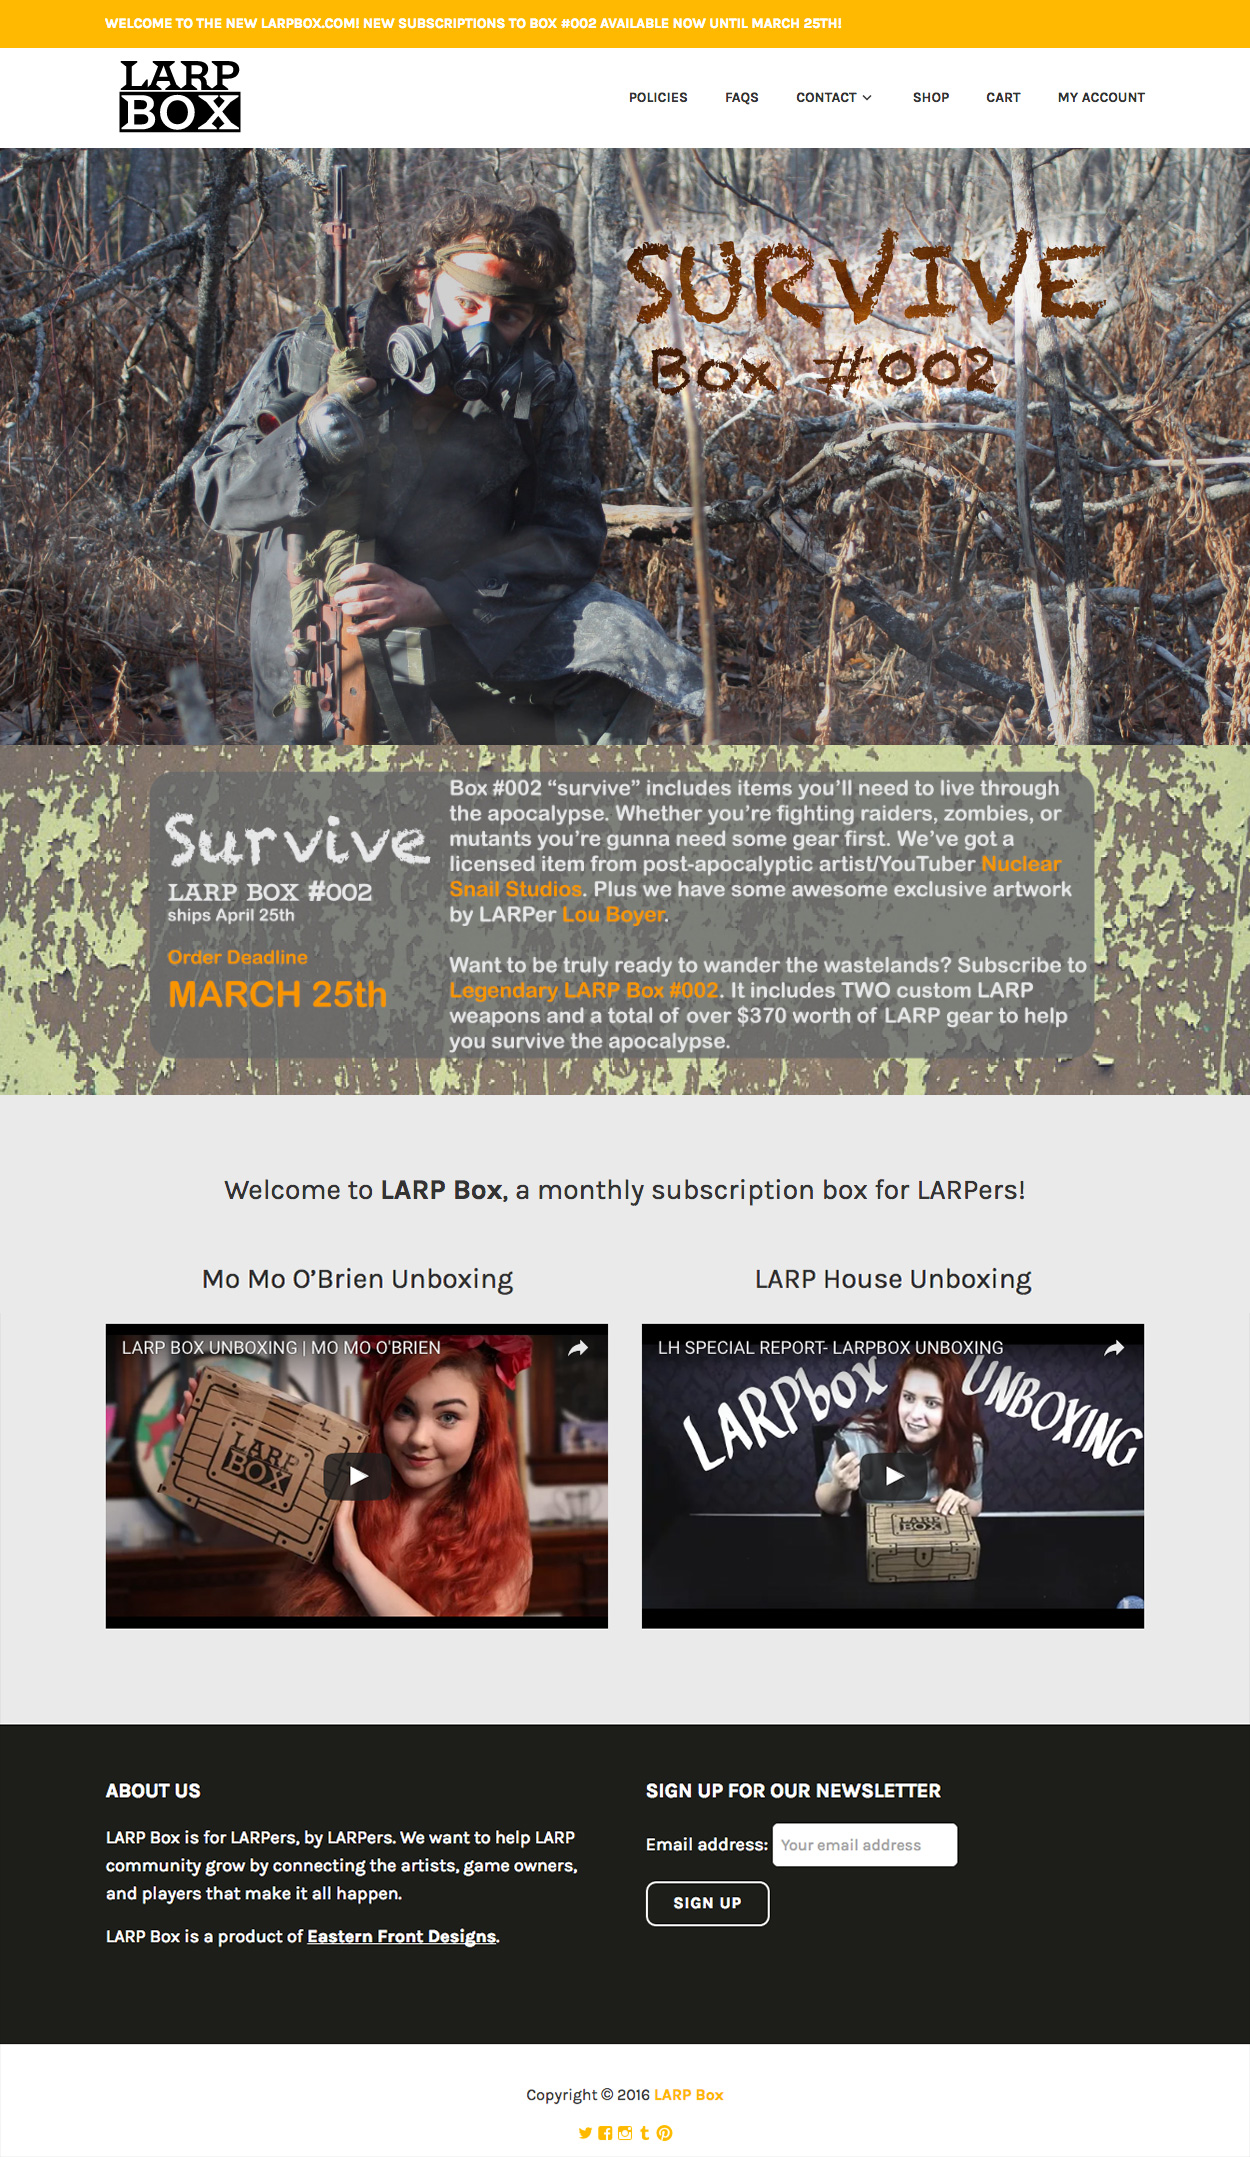 LARP Box Website